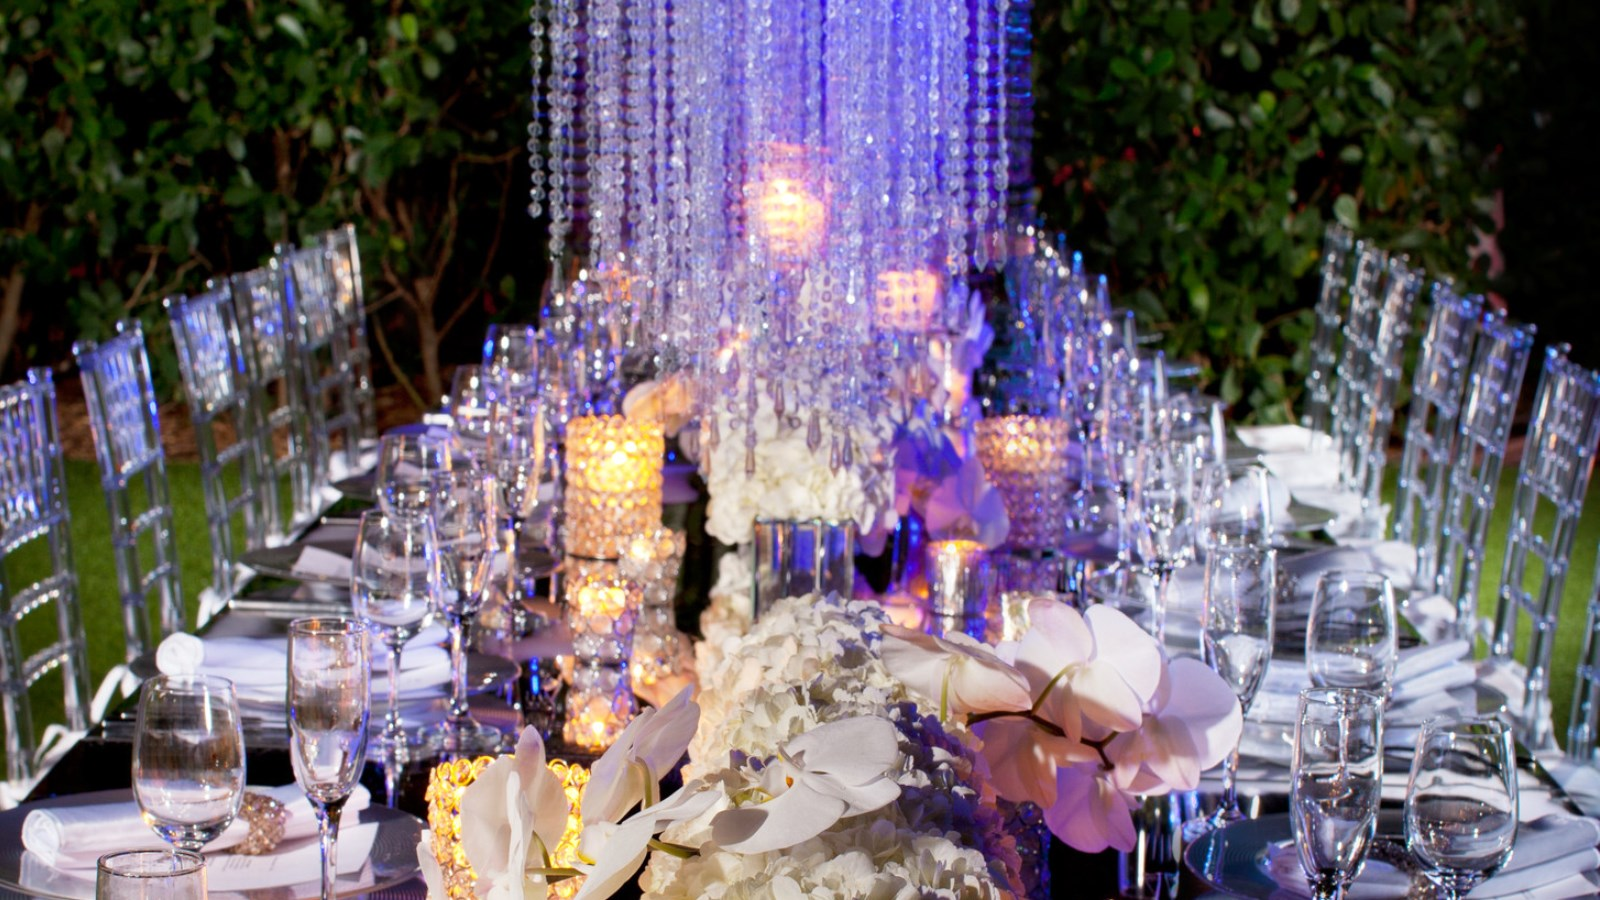 Wedding venues in miami south beach weddings w south beach wedding venues in miami lawn reception w south beach junglespirit